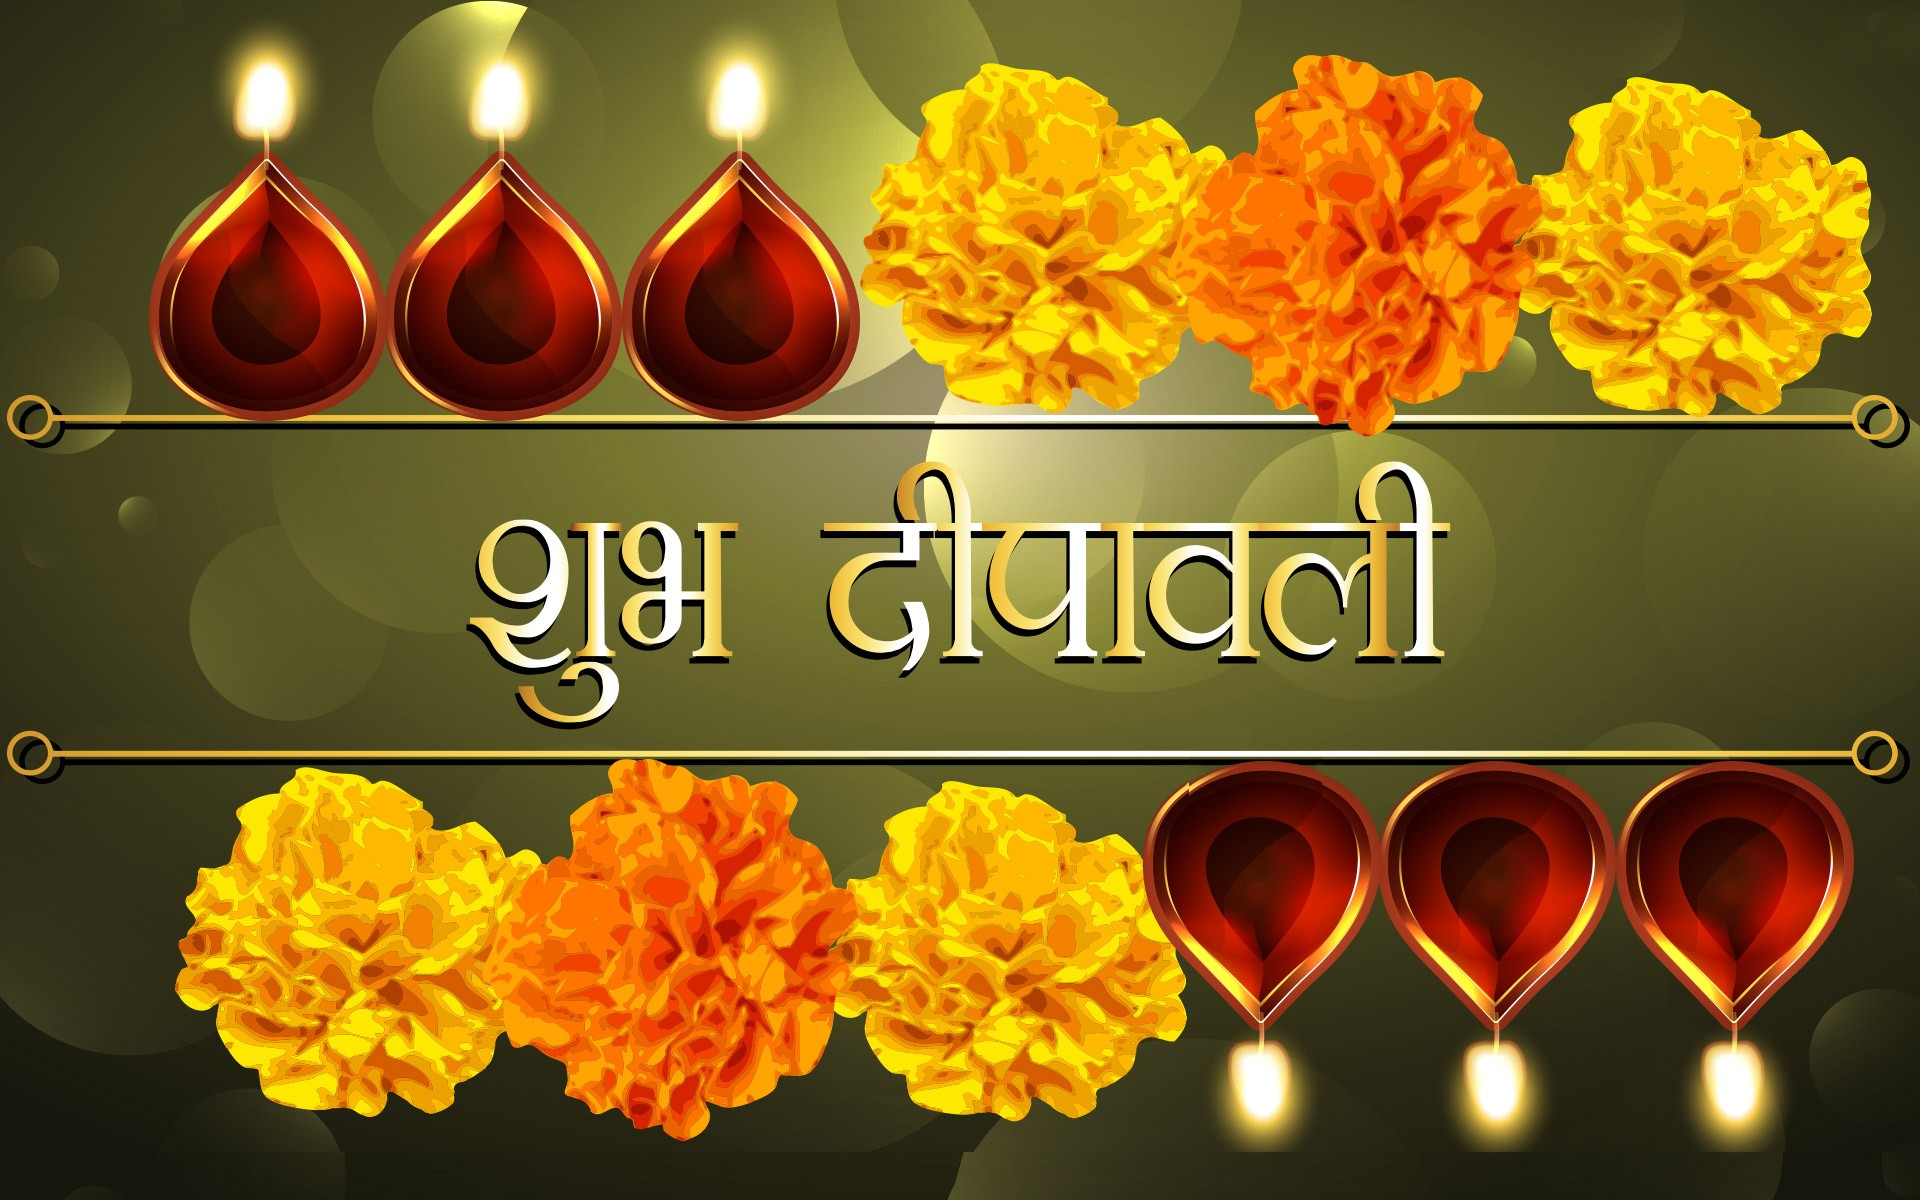 Happy diwali messages in hindi quotes wishes sayings happydiwali messages in hindi m4hsunfo